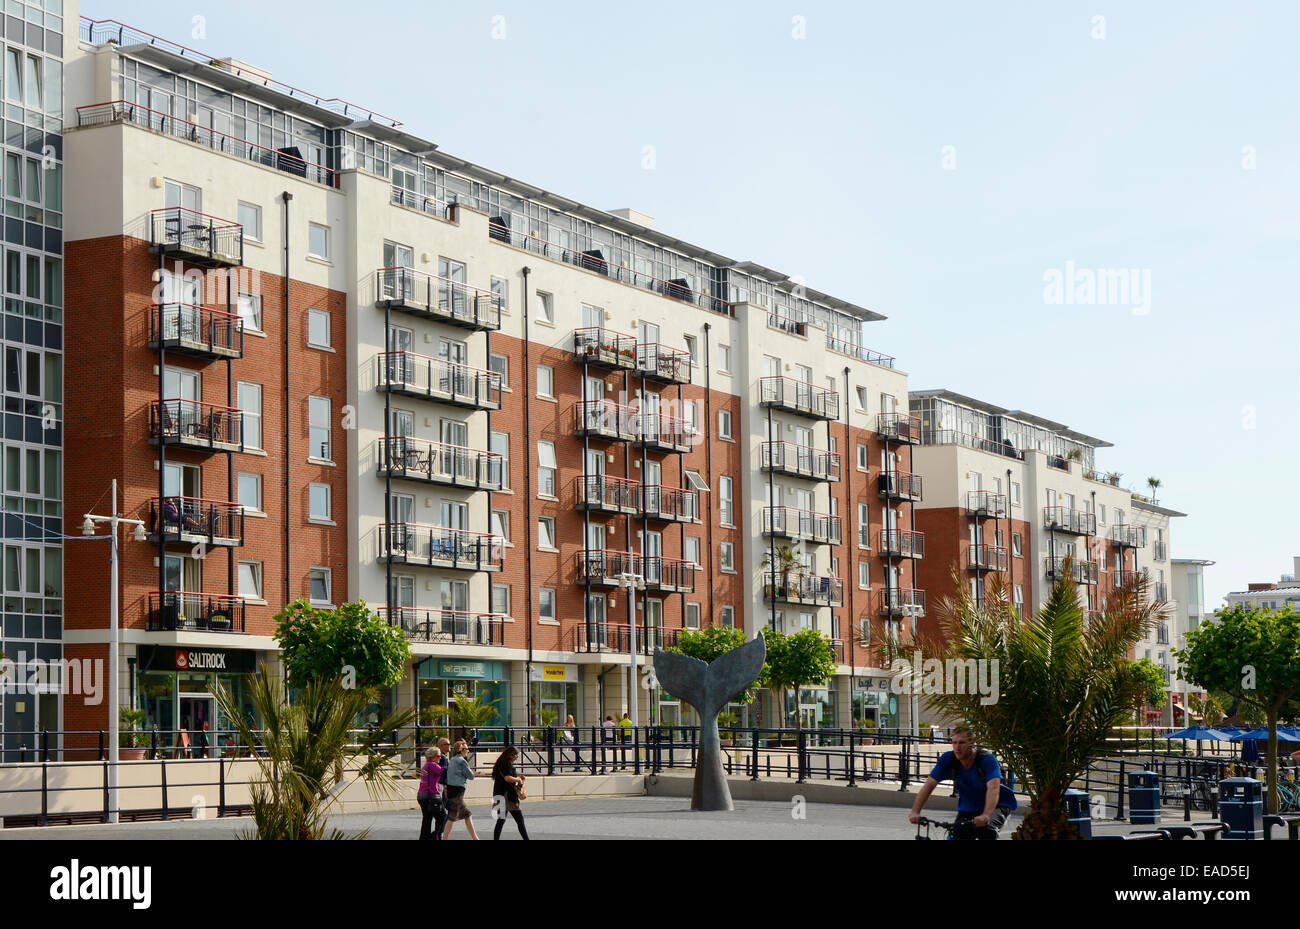 Modern Apartment Buildings Of Steel, Brick And Glass At Gunwharf Quays  Shopping Mall In Portsmouth. Hampshire. England. Shops Be